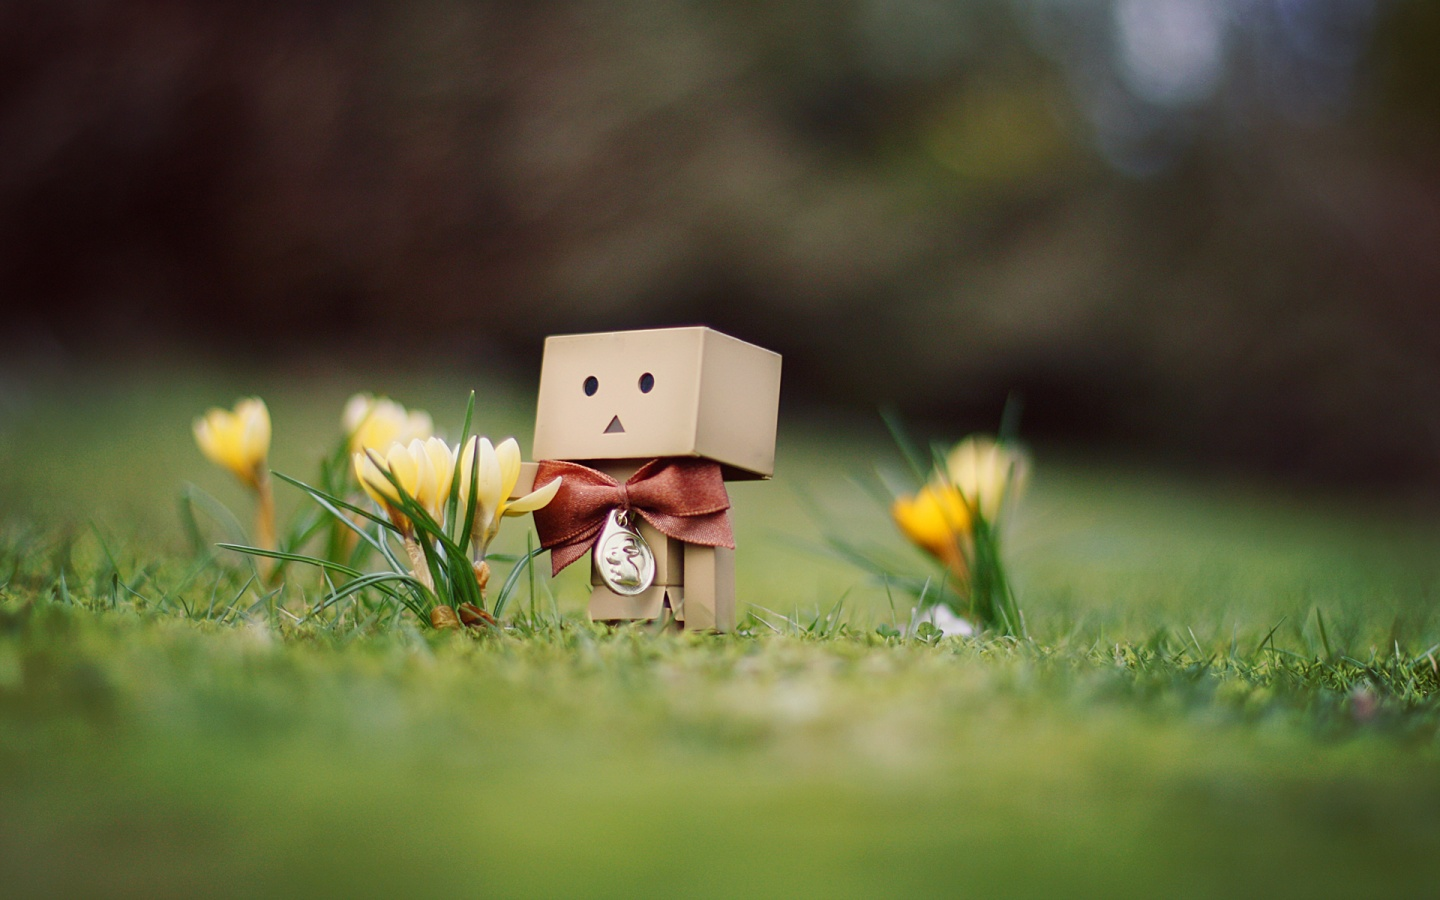 1440x900 danbo march between flowers desktop pc and mac wallpaper